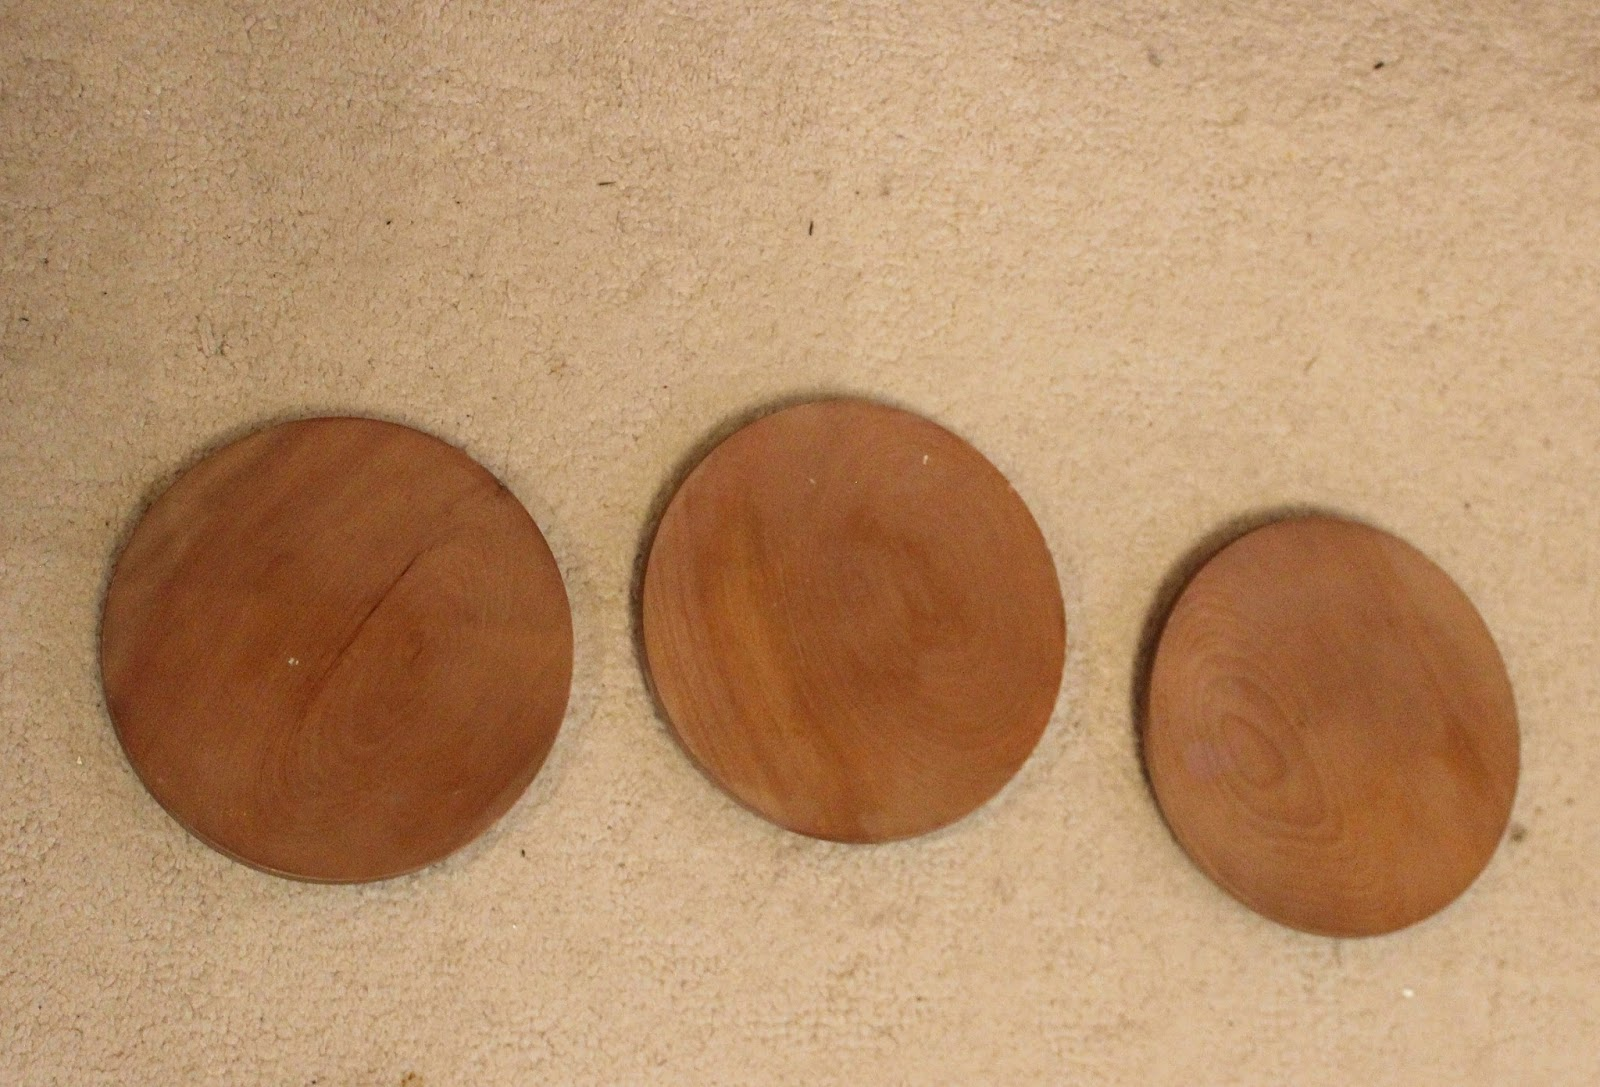 Thrift Shop Wooden Salad Plates Repurposed As Christmas/Winter Decor ...